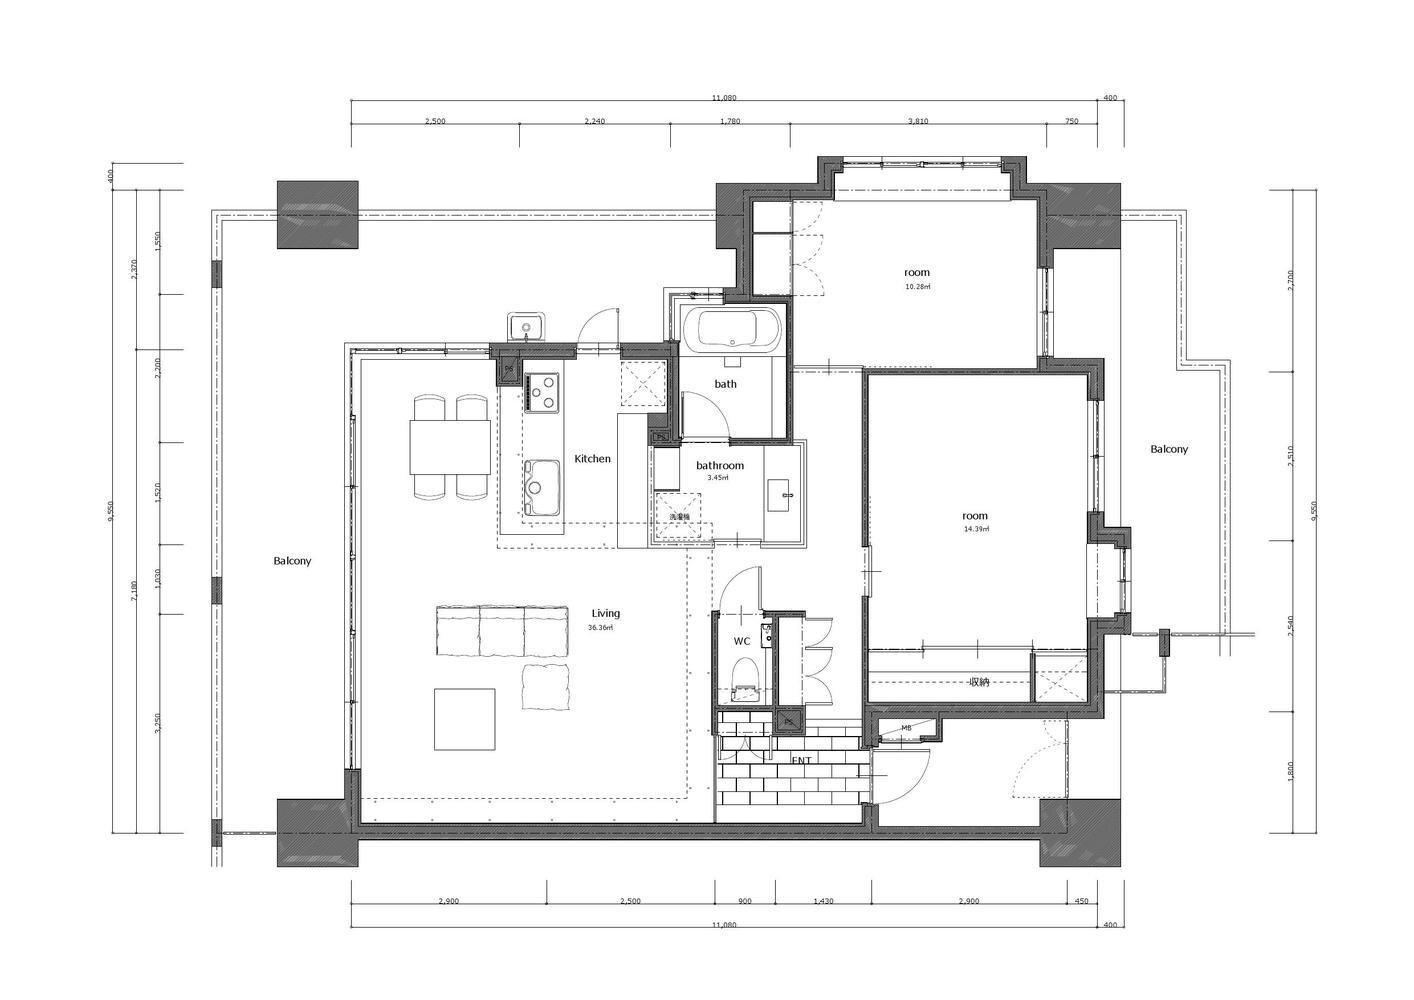 Nionohama Apartment House Renovation - ALTS Design Office - Japan - Floor Plan - Humble Homes